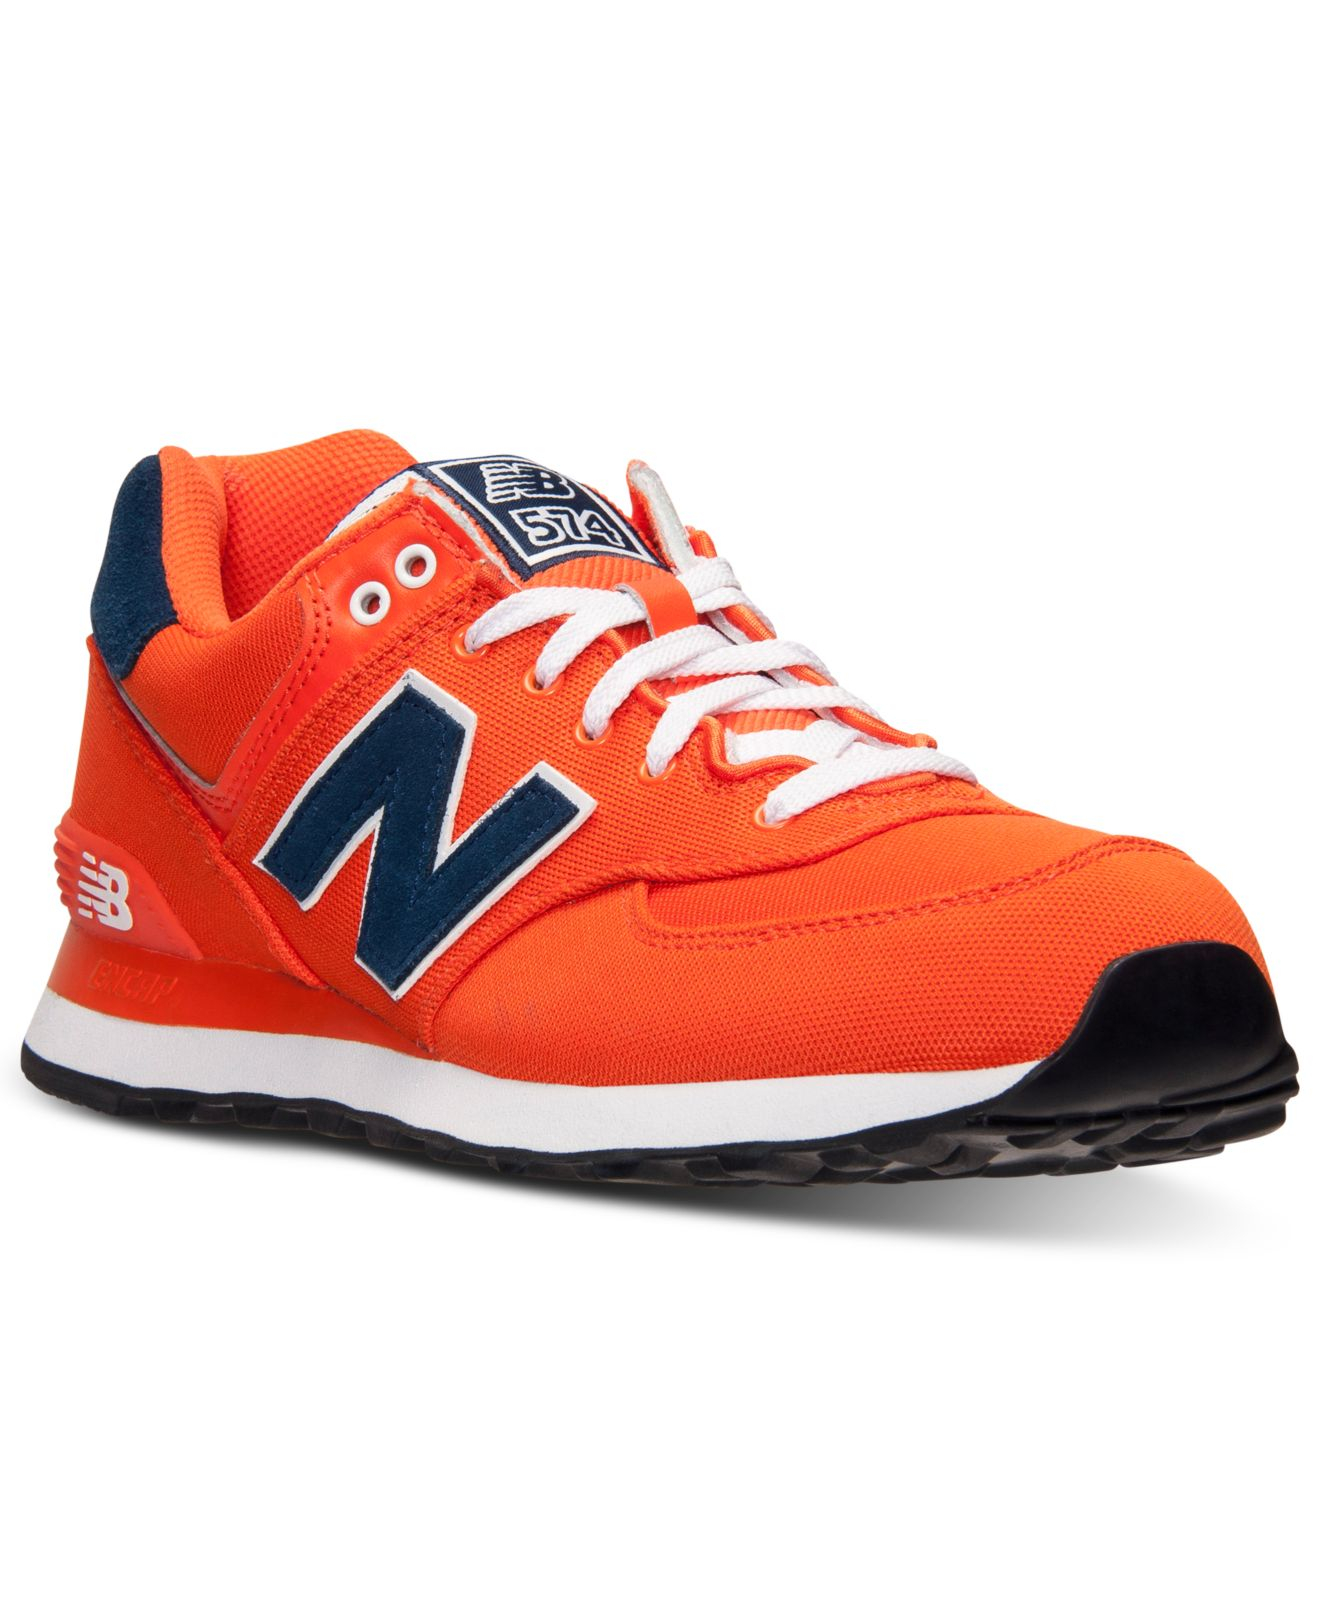 New Balance Blue Mz501 Pique Polo Pack Fashion Sneaker for men